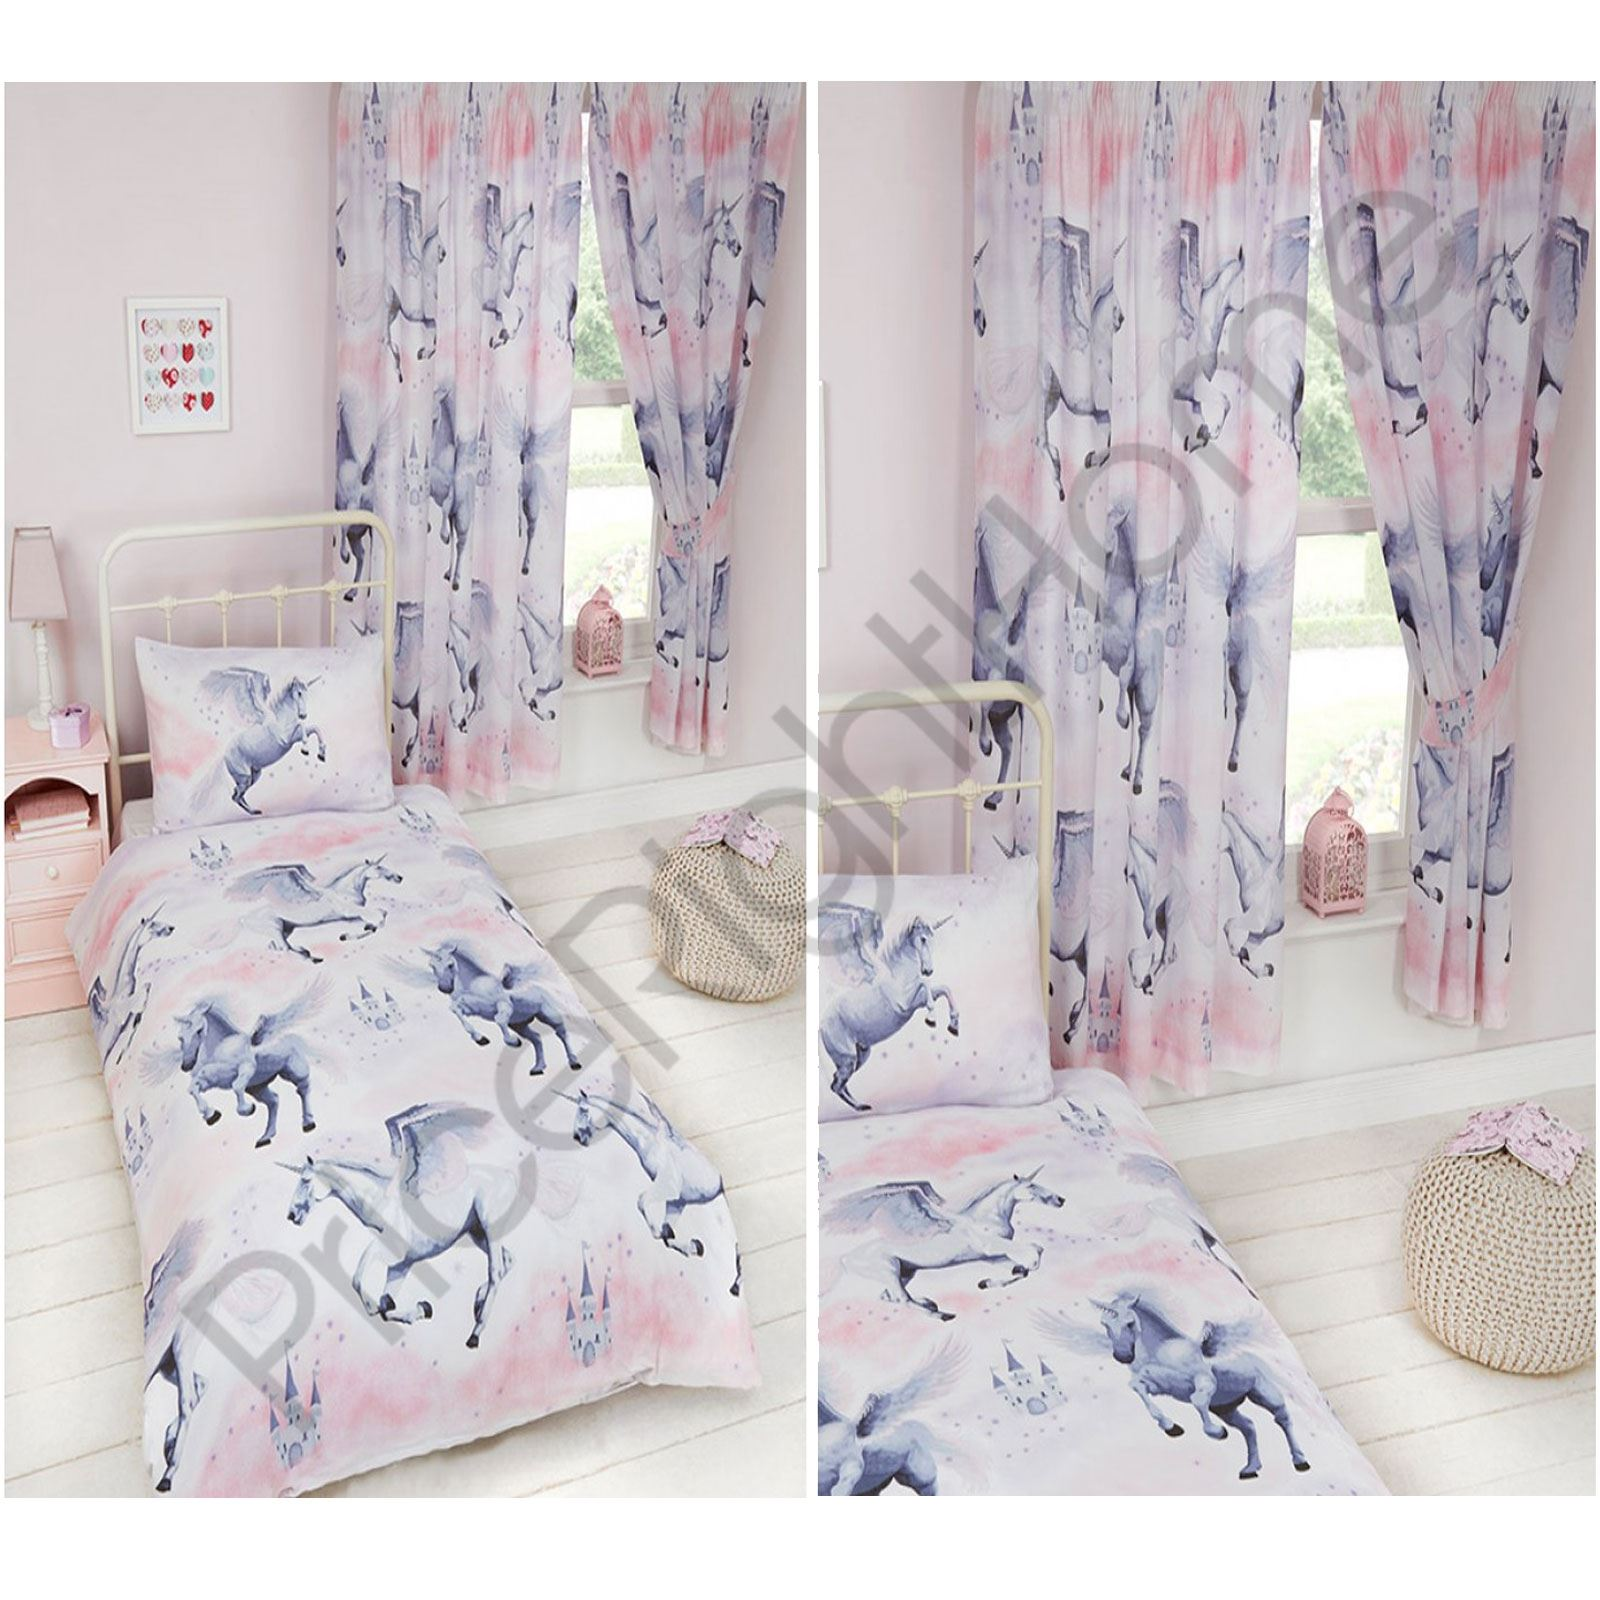 Stardust unicorn duvet cover sets matching curtains for Bedroom curtains and bedding